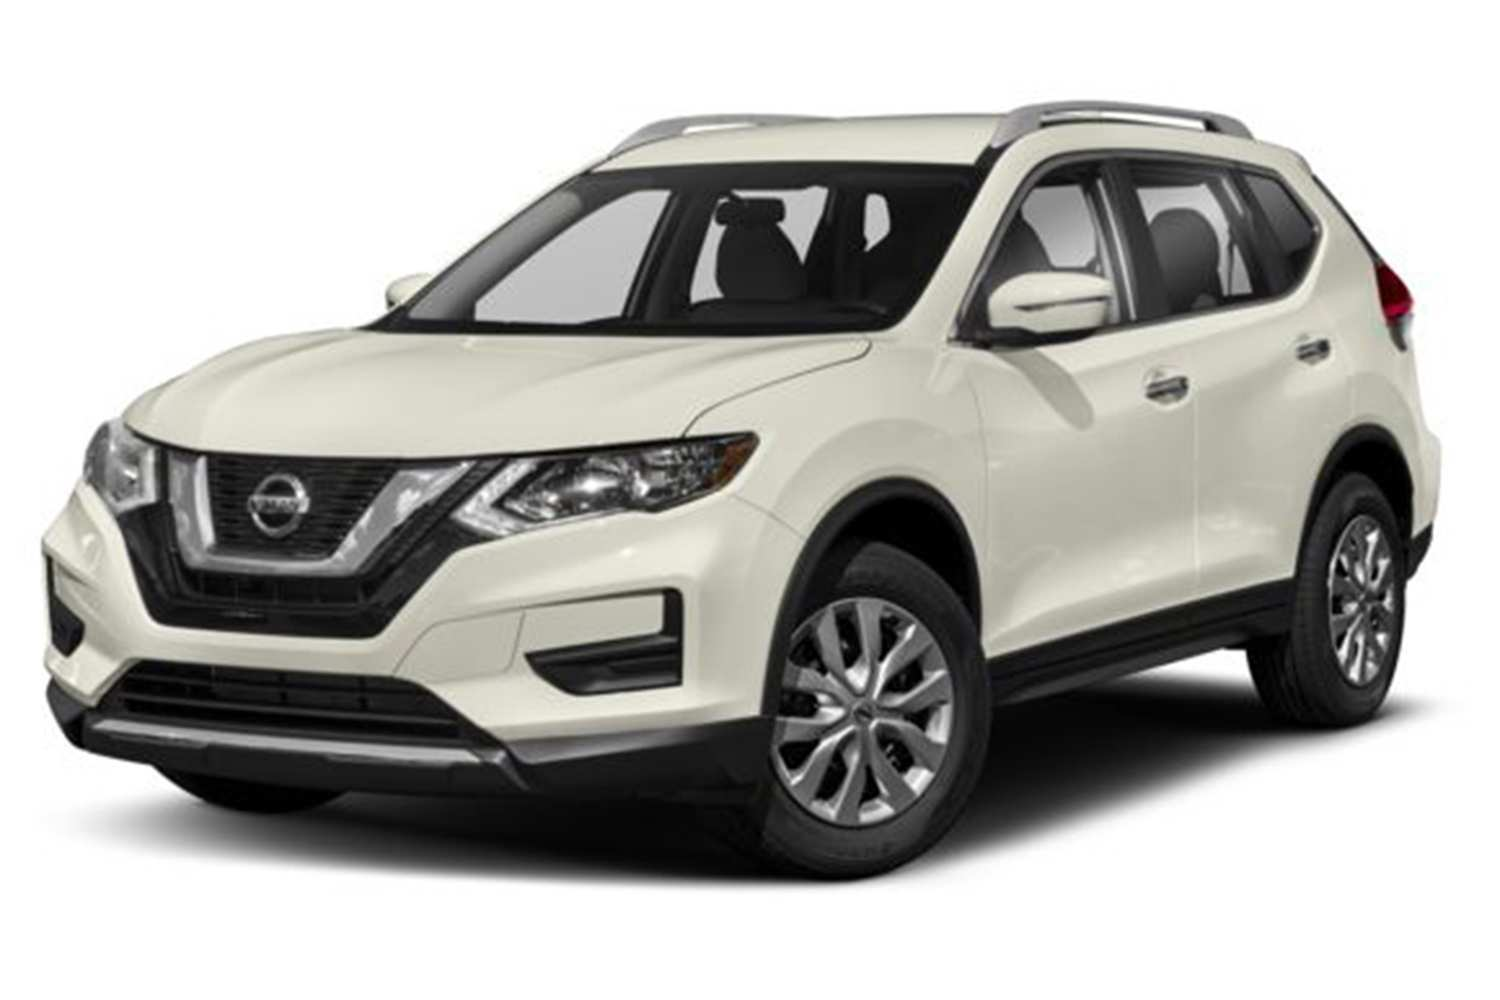 27 New 2019 Nissan Rogue Hybrid Interior